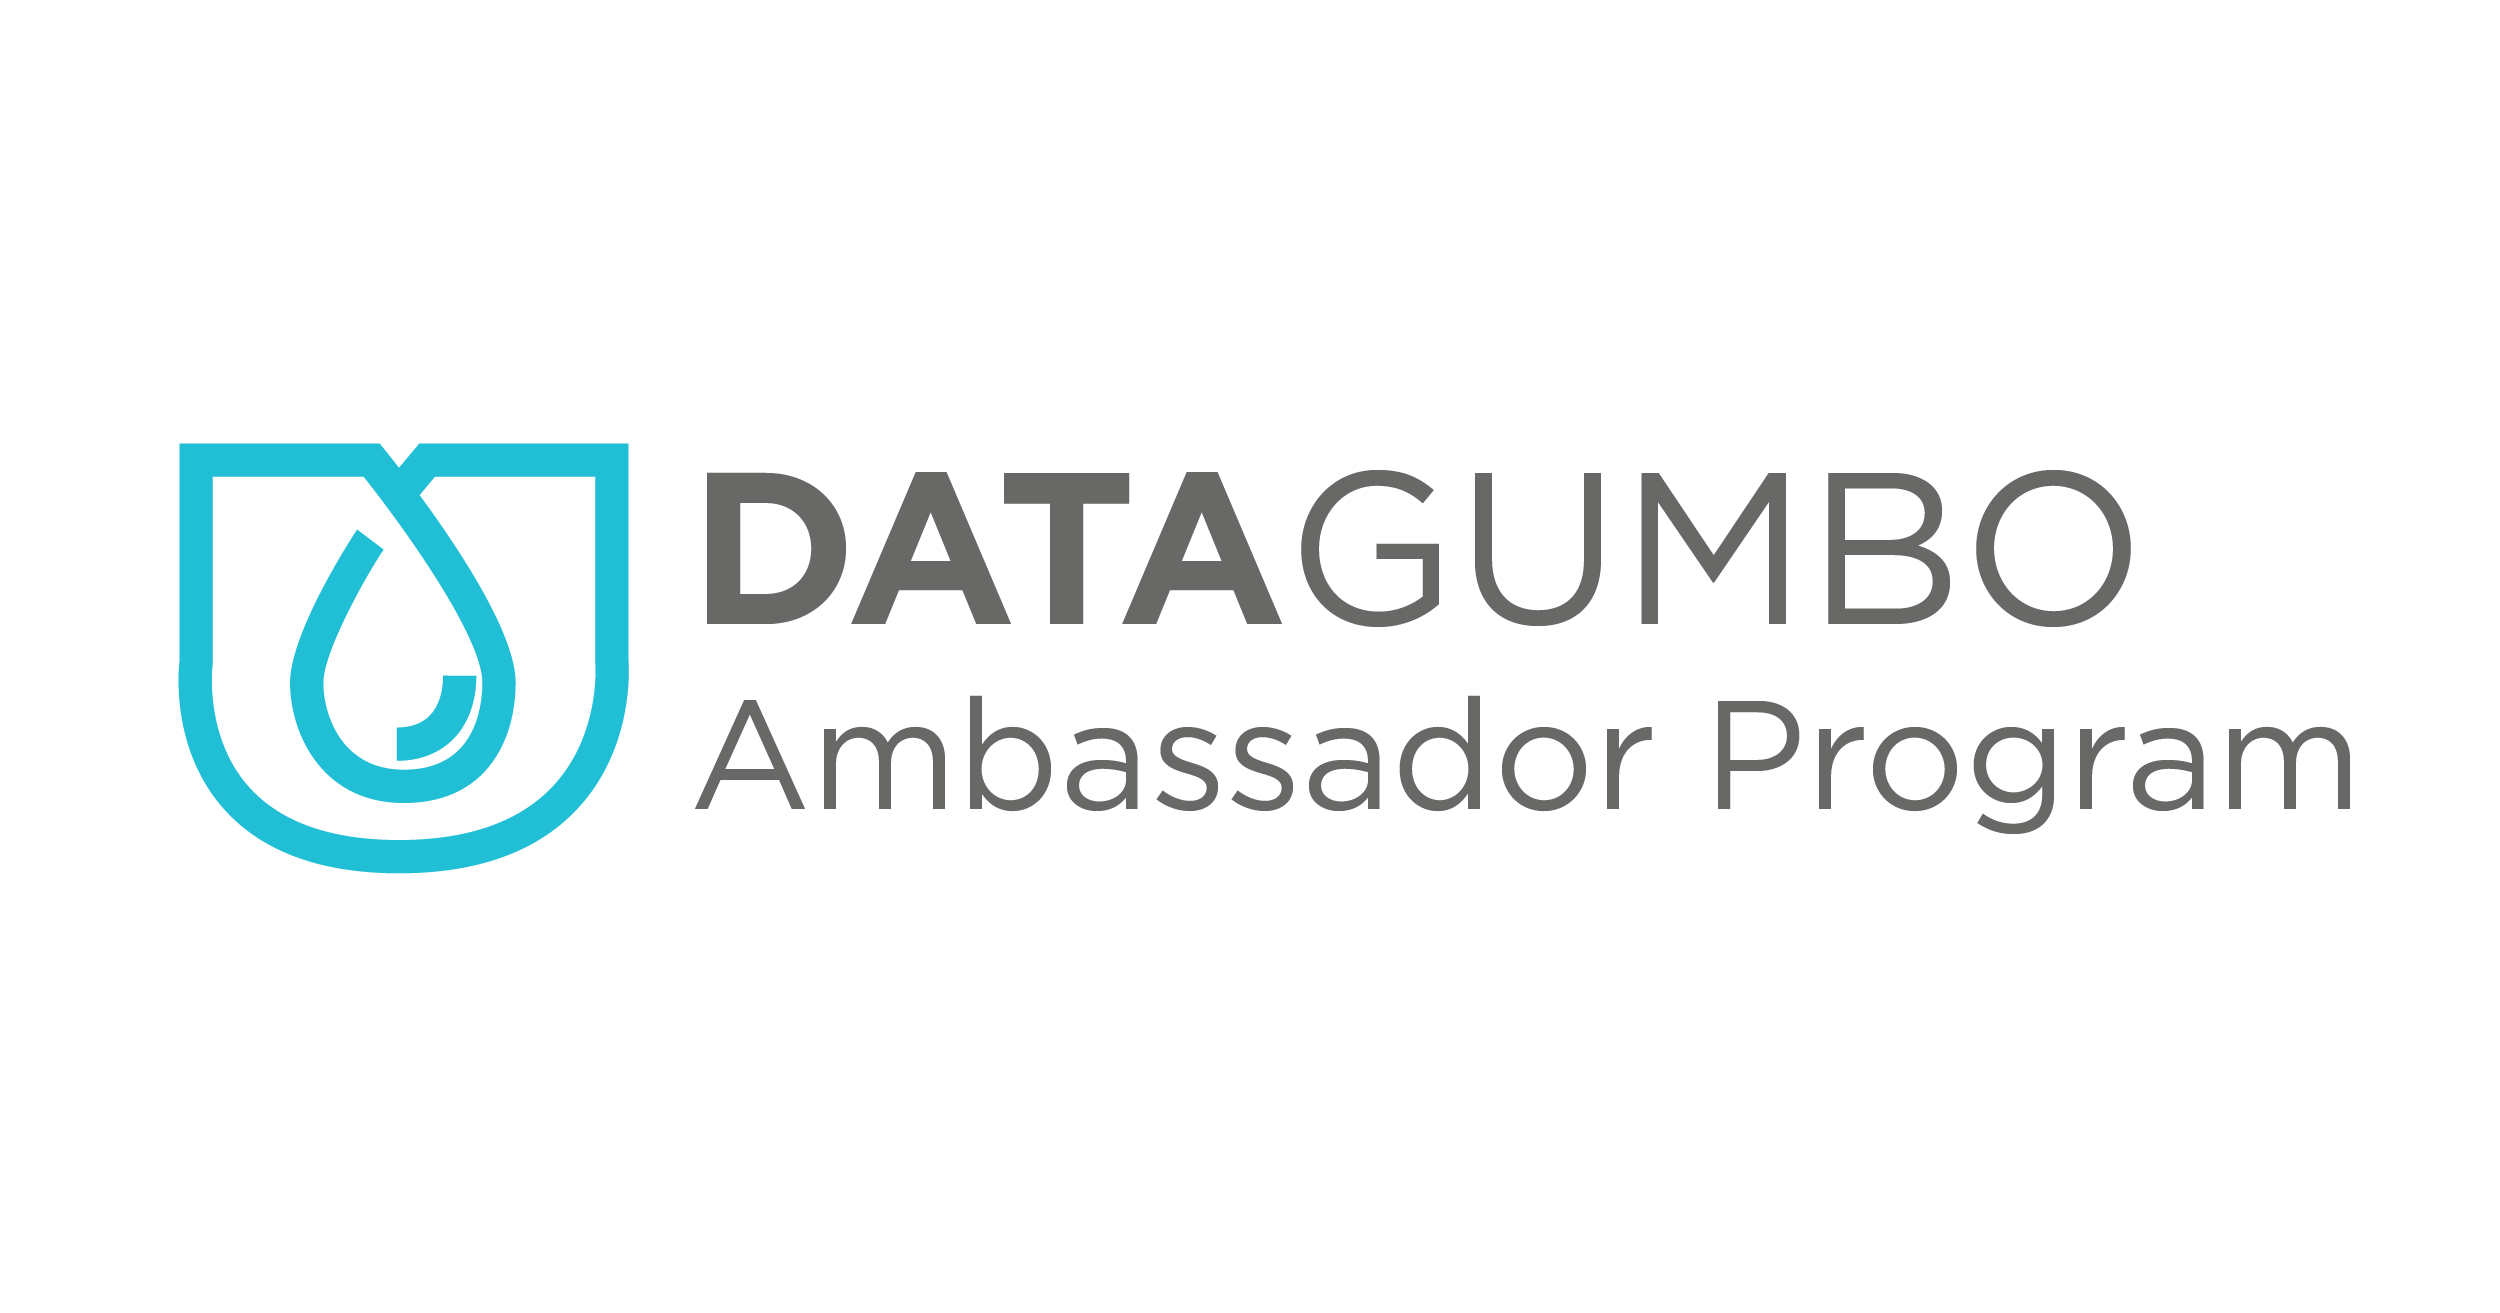 Data Gumbo is Launching an Ambassador Program